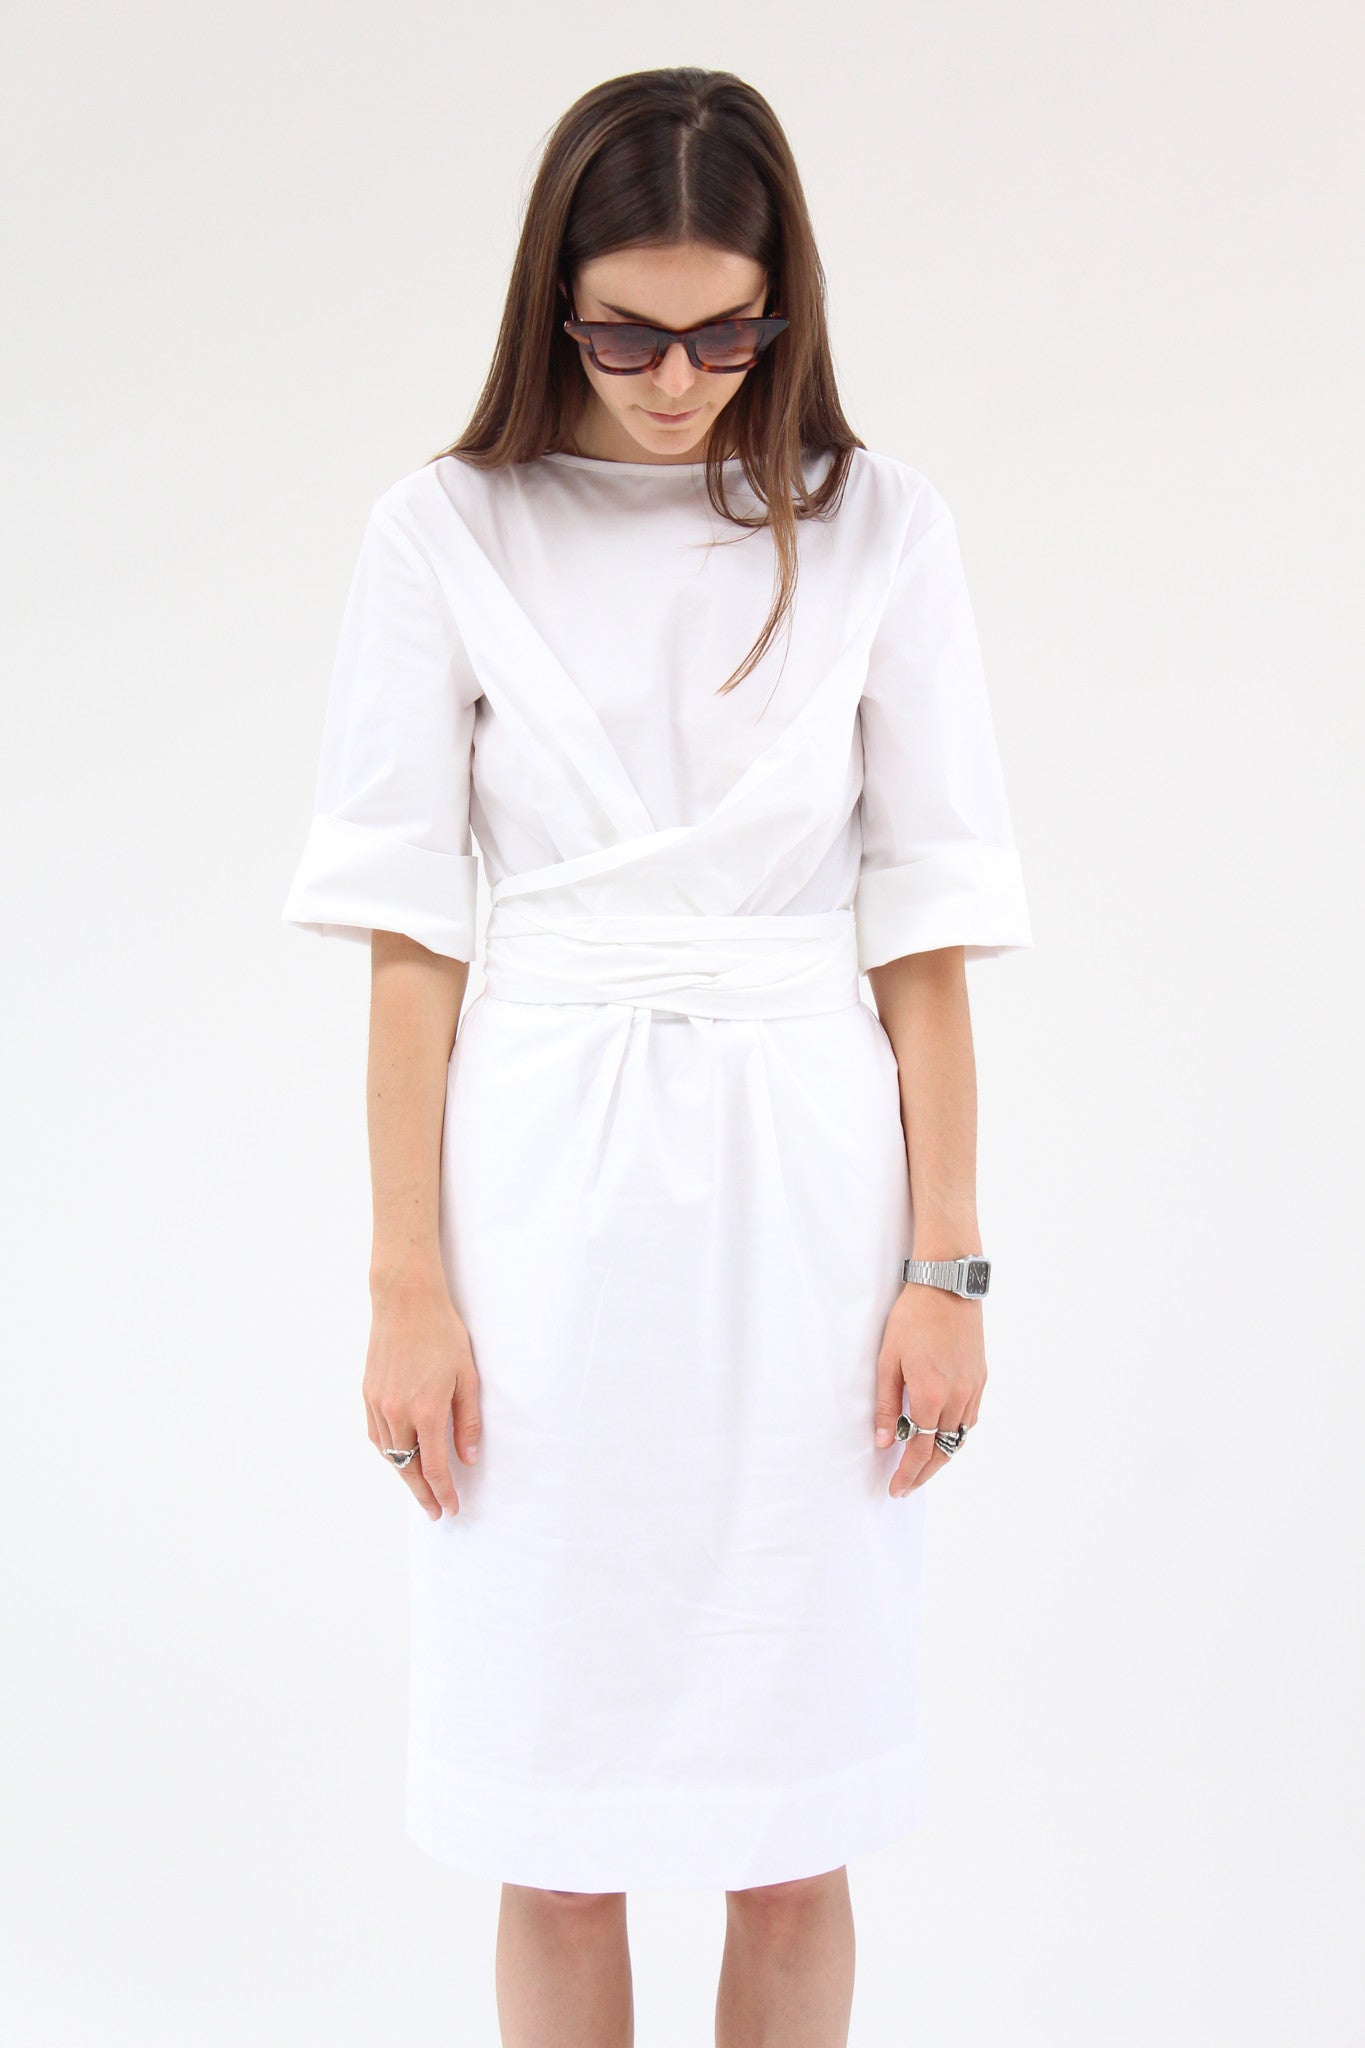 Gary Bigeni Harper Dress White / Beklina